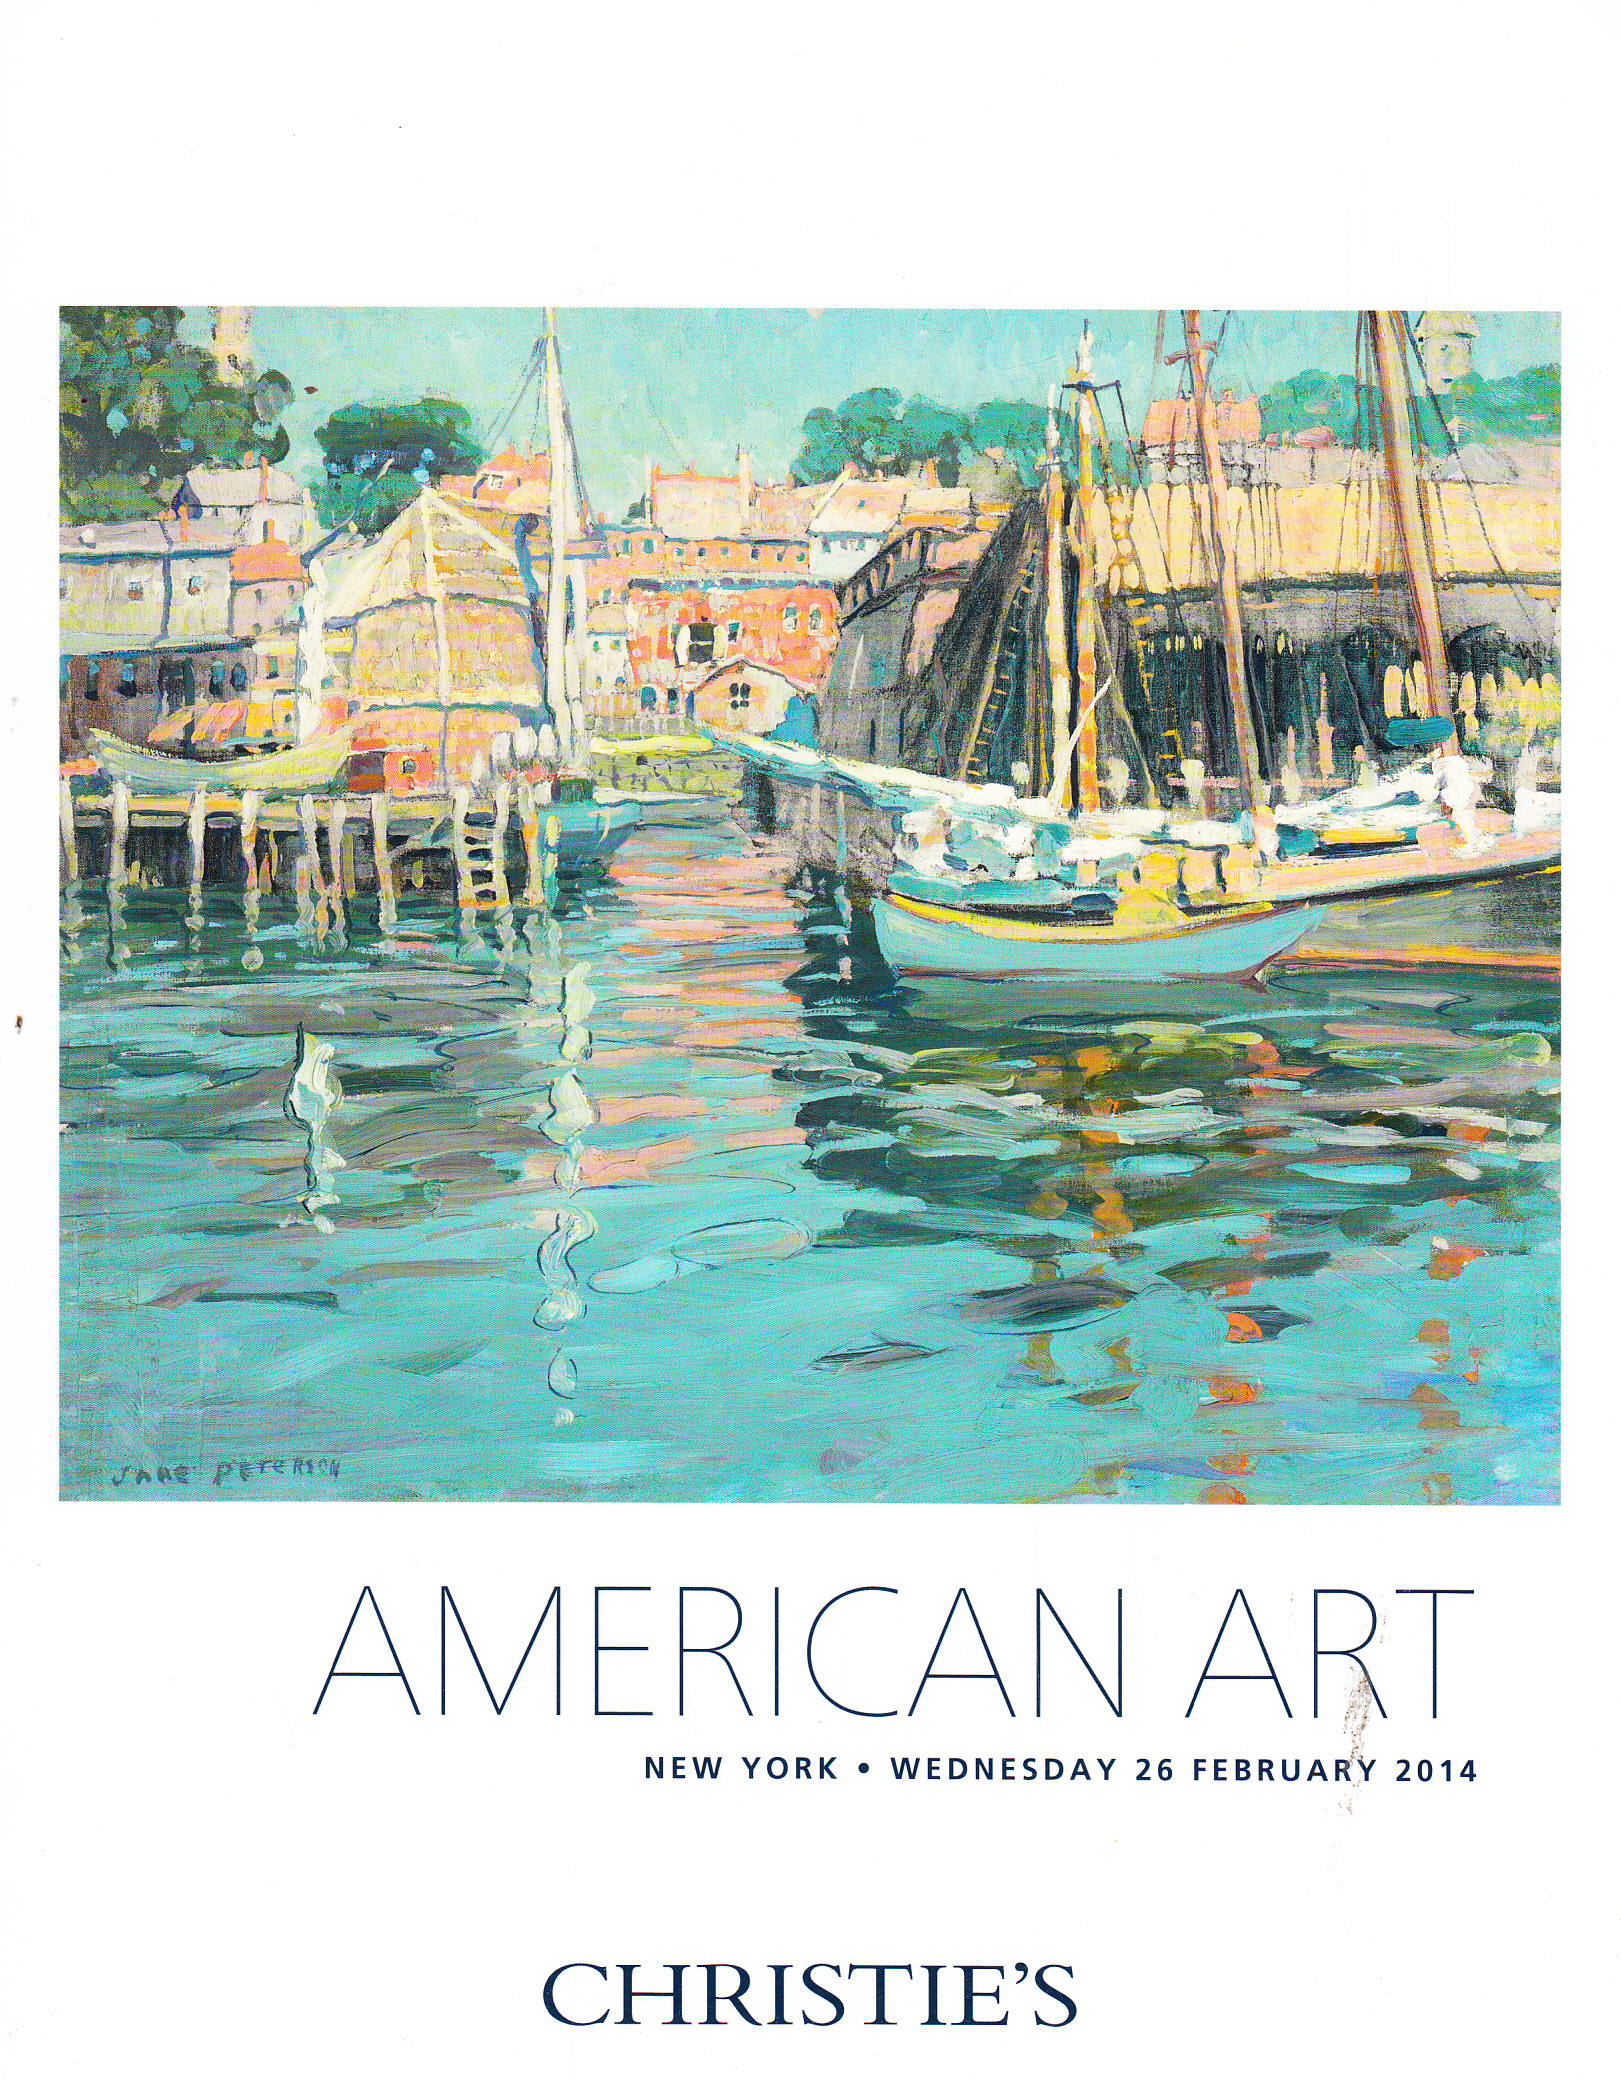 ih christie 39 s american art new york 2 26 14 sale 2822 auction catalogs home of the catalog kid. Black Bedroom Furniture Sets. Home Design Ideas